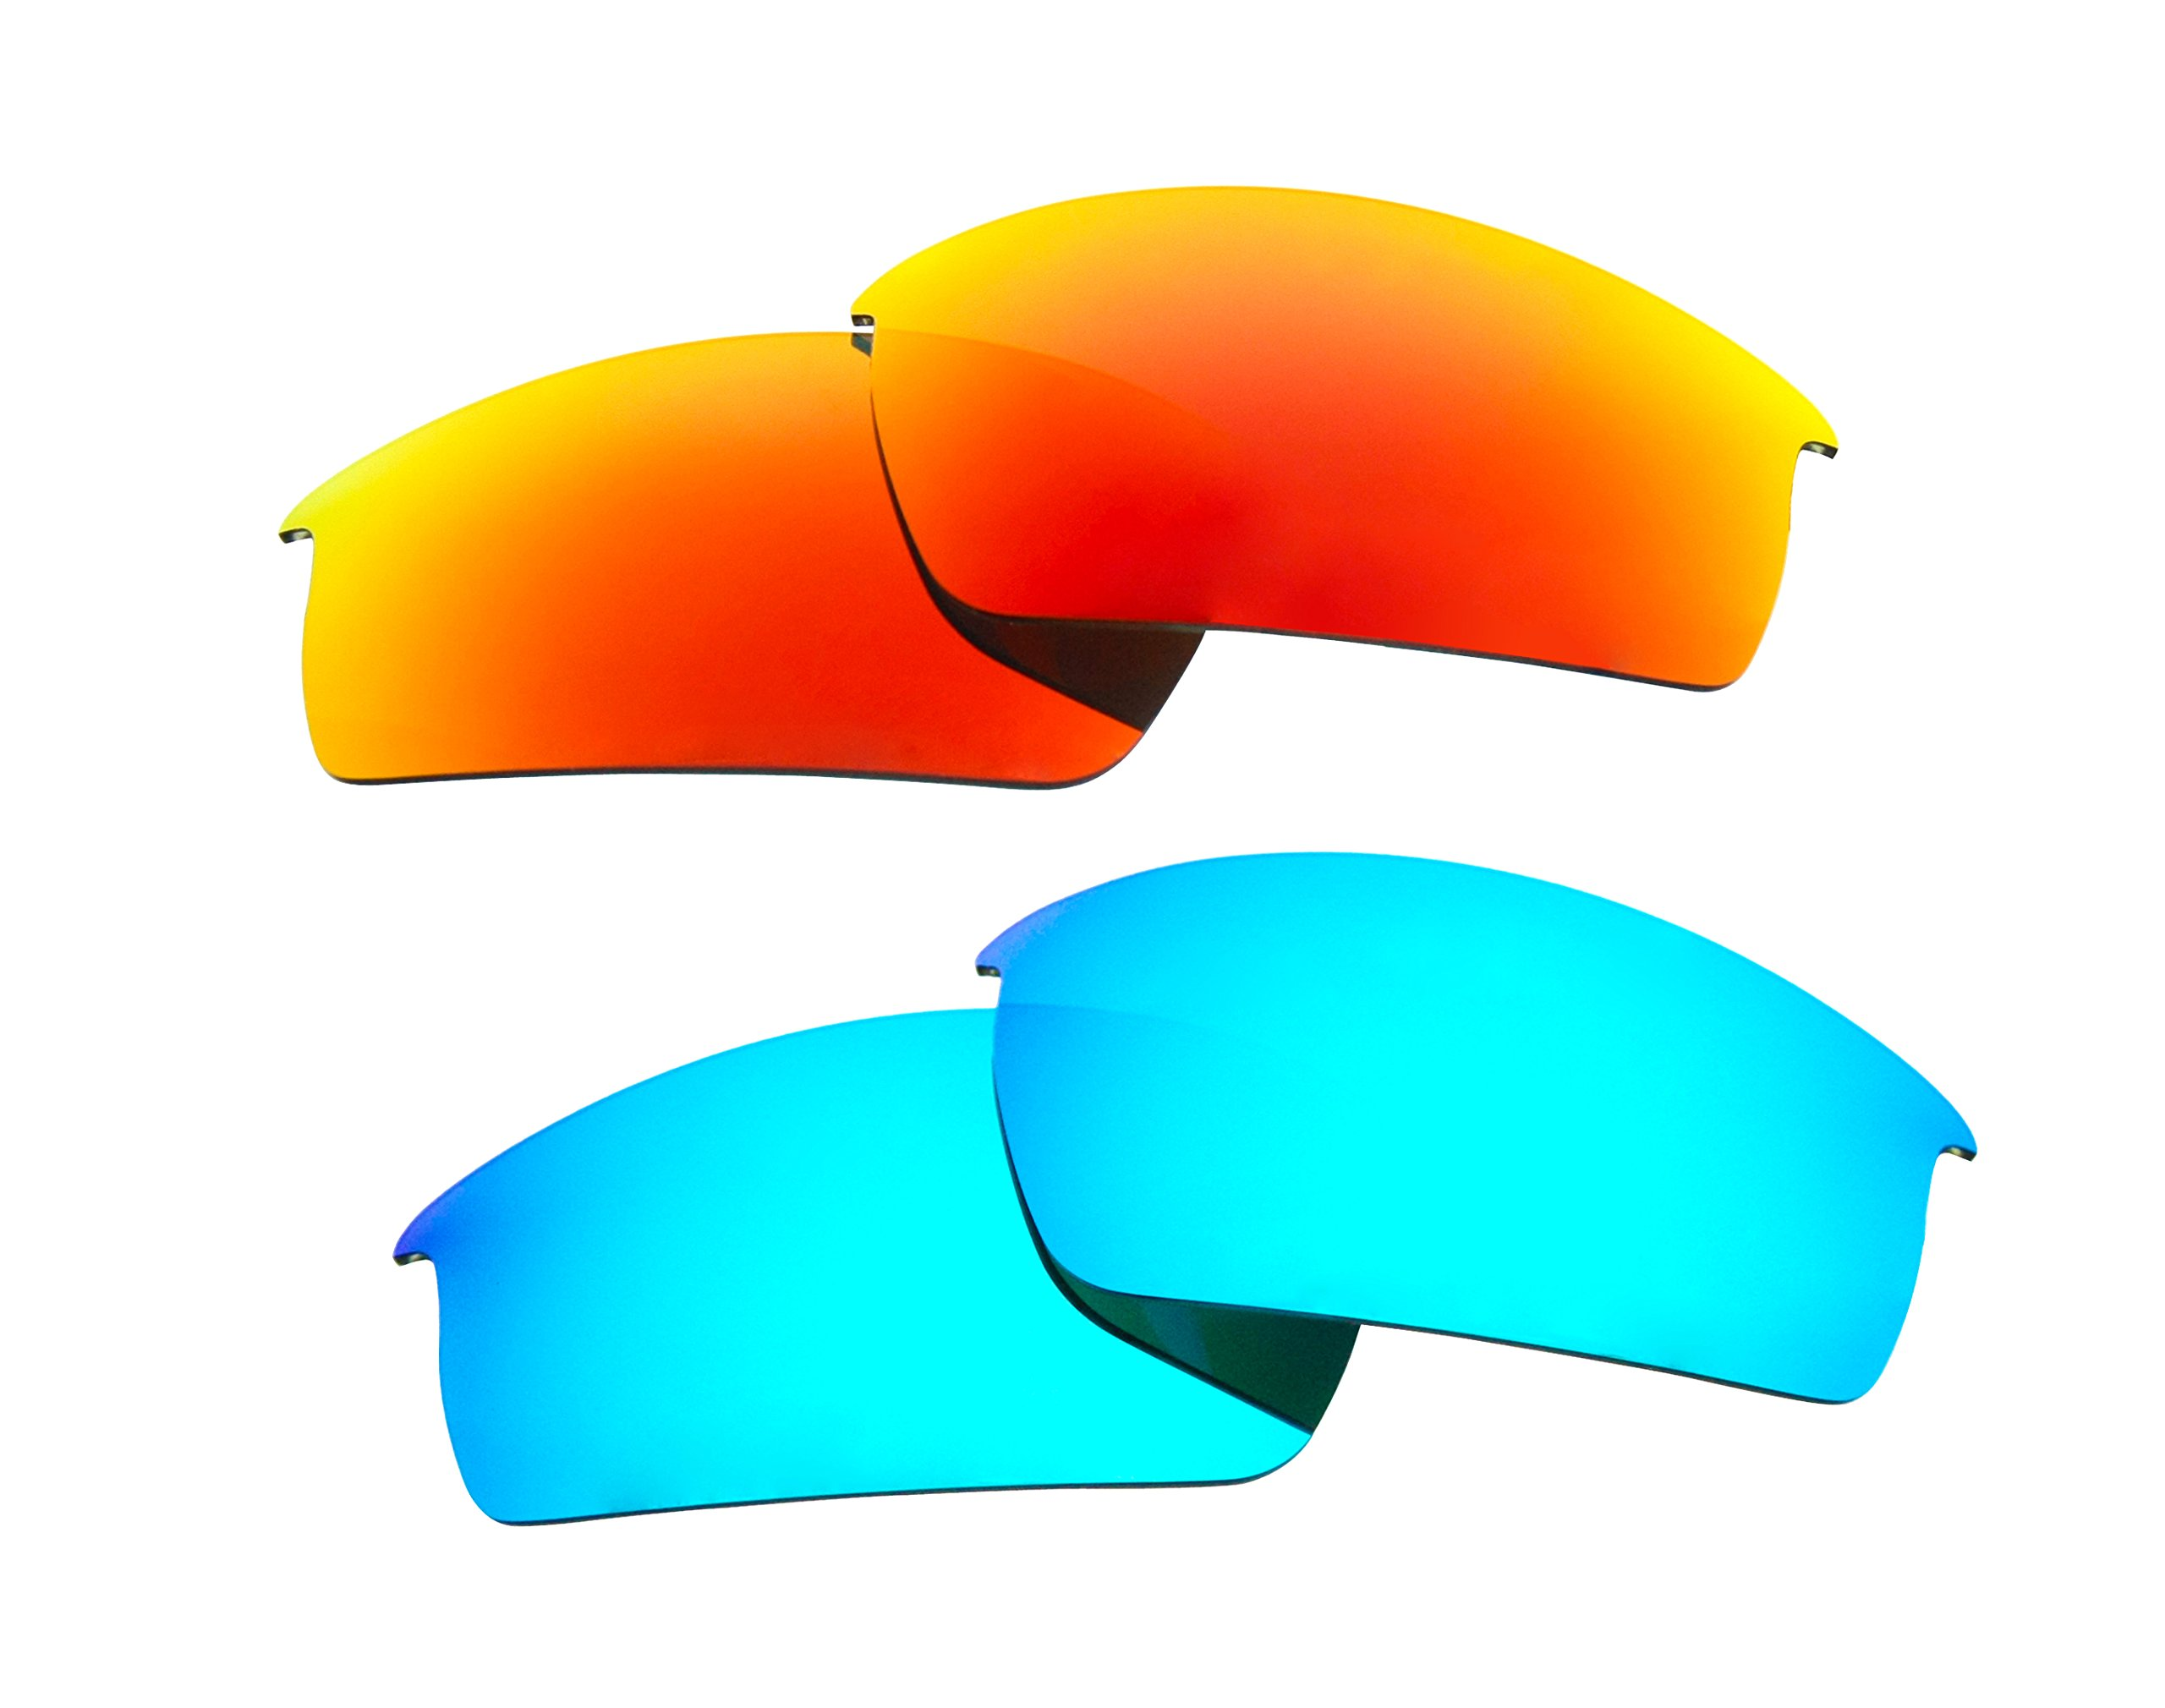 2 Pairs Polarized Replacement Sunglasses Lenses for Oakley Bottlecap with UV Protection(Ice Blue and Fire Red Mirror)